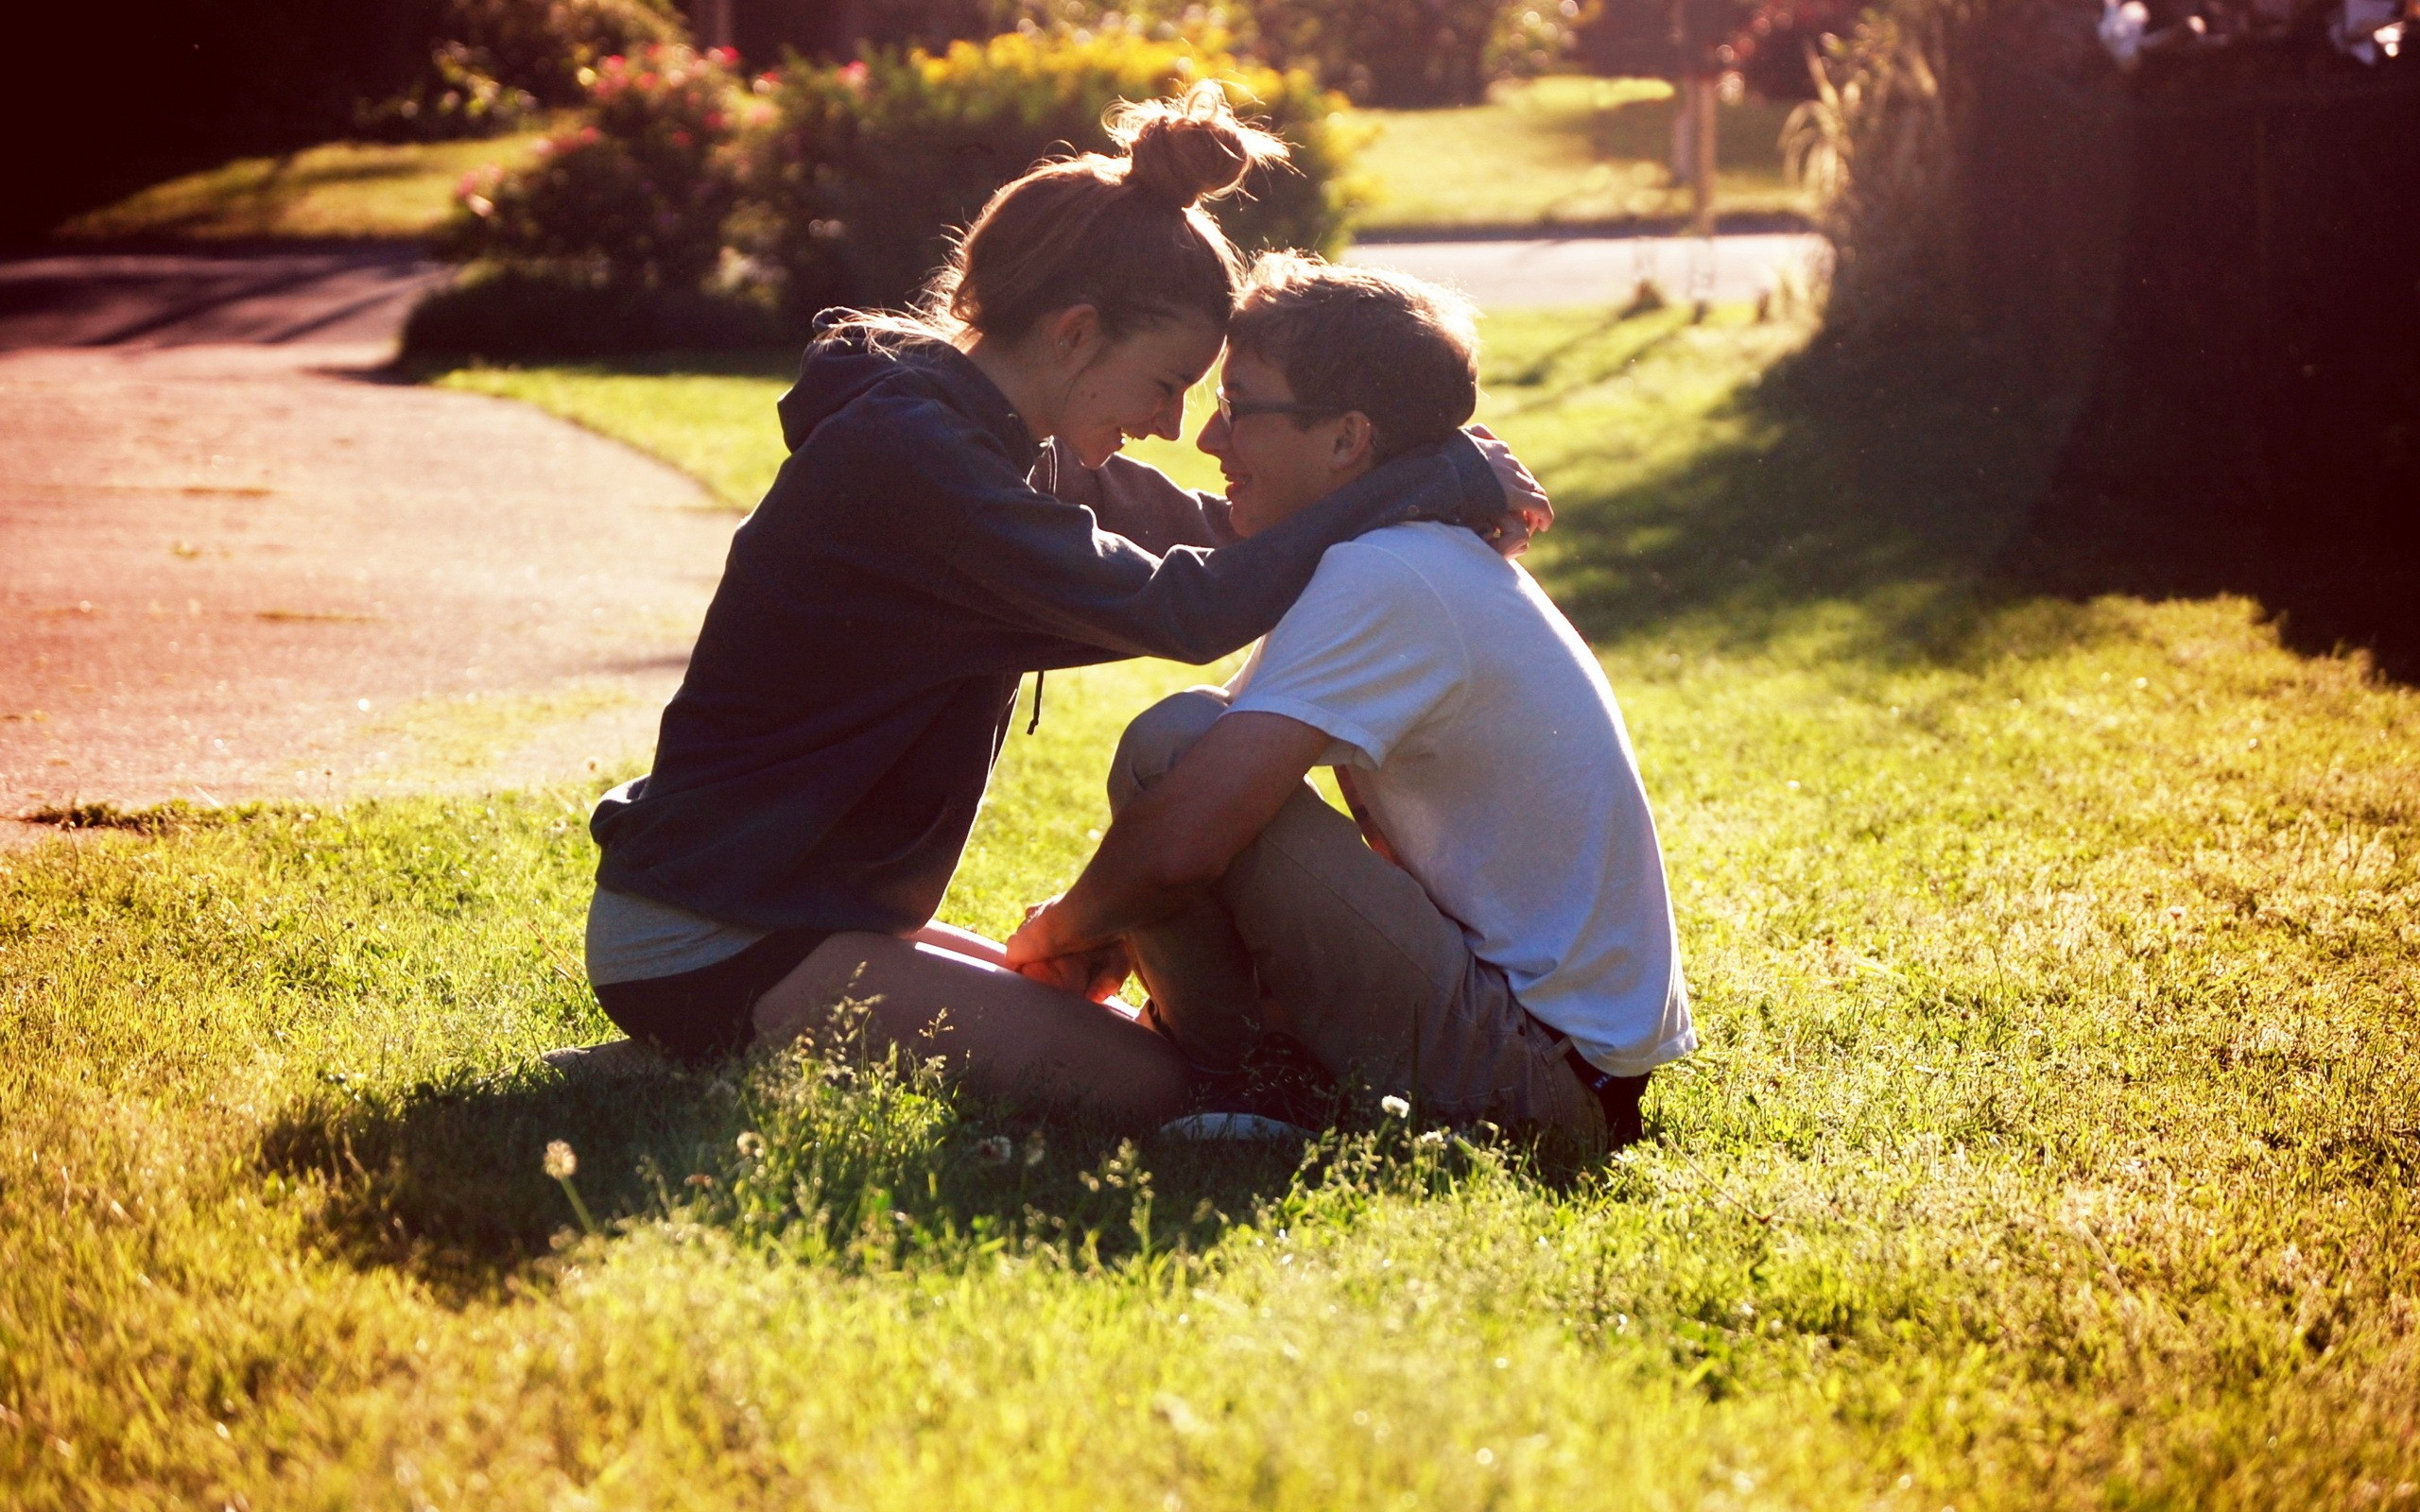 Hot Un Stock >> Young Couple in the Grass wallpapers | Young Couple in the ...